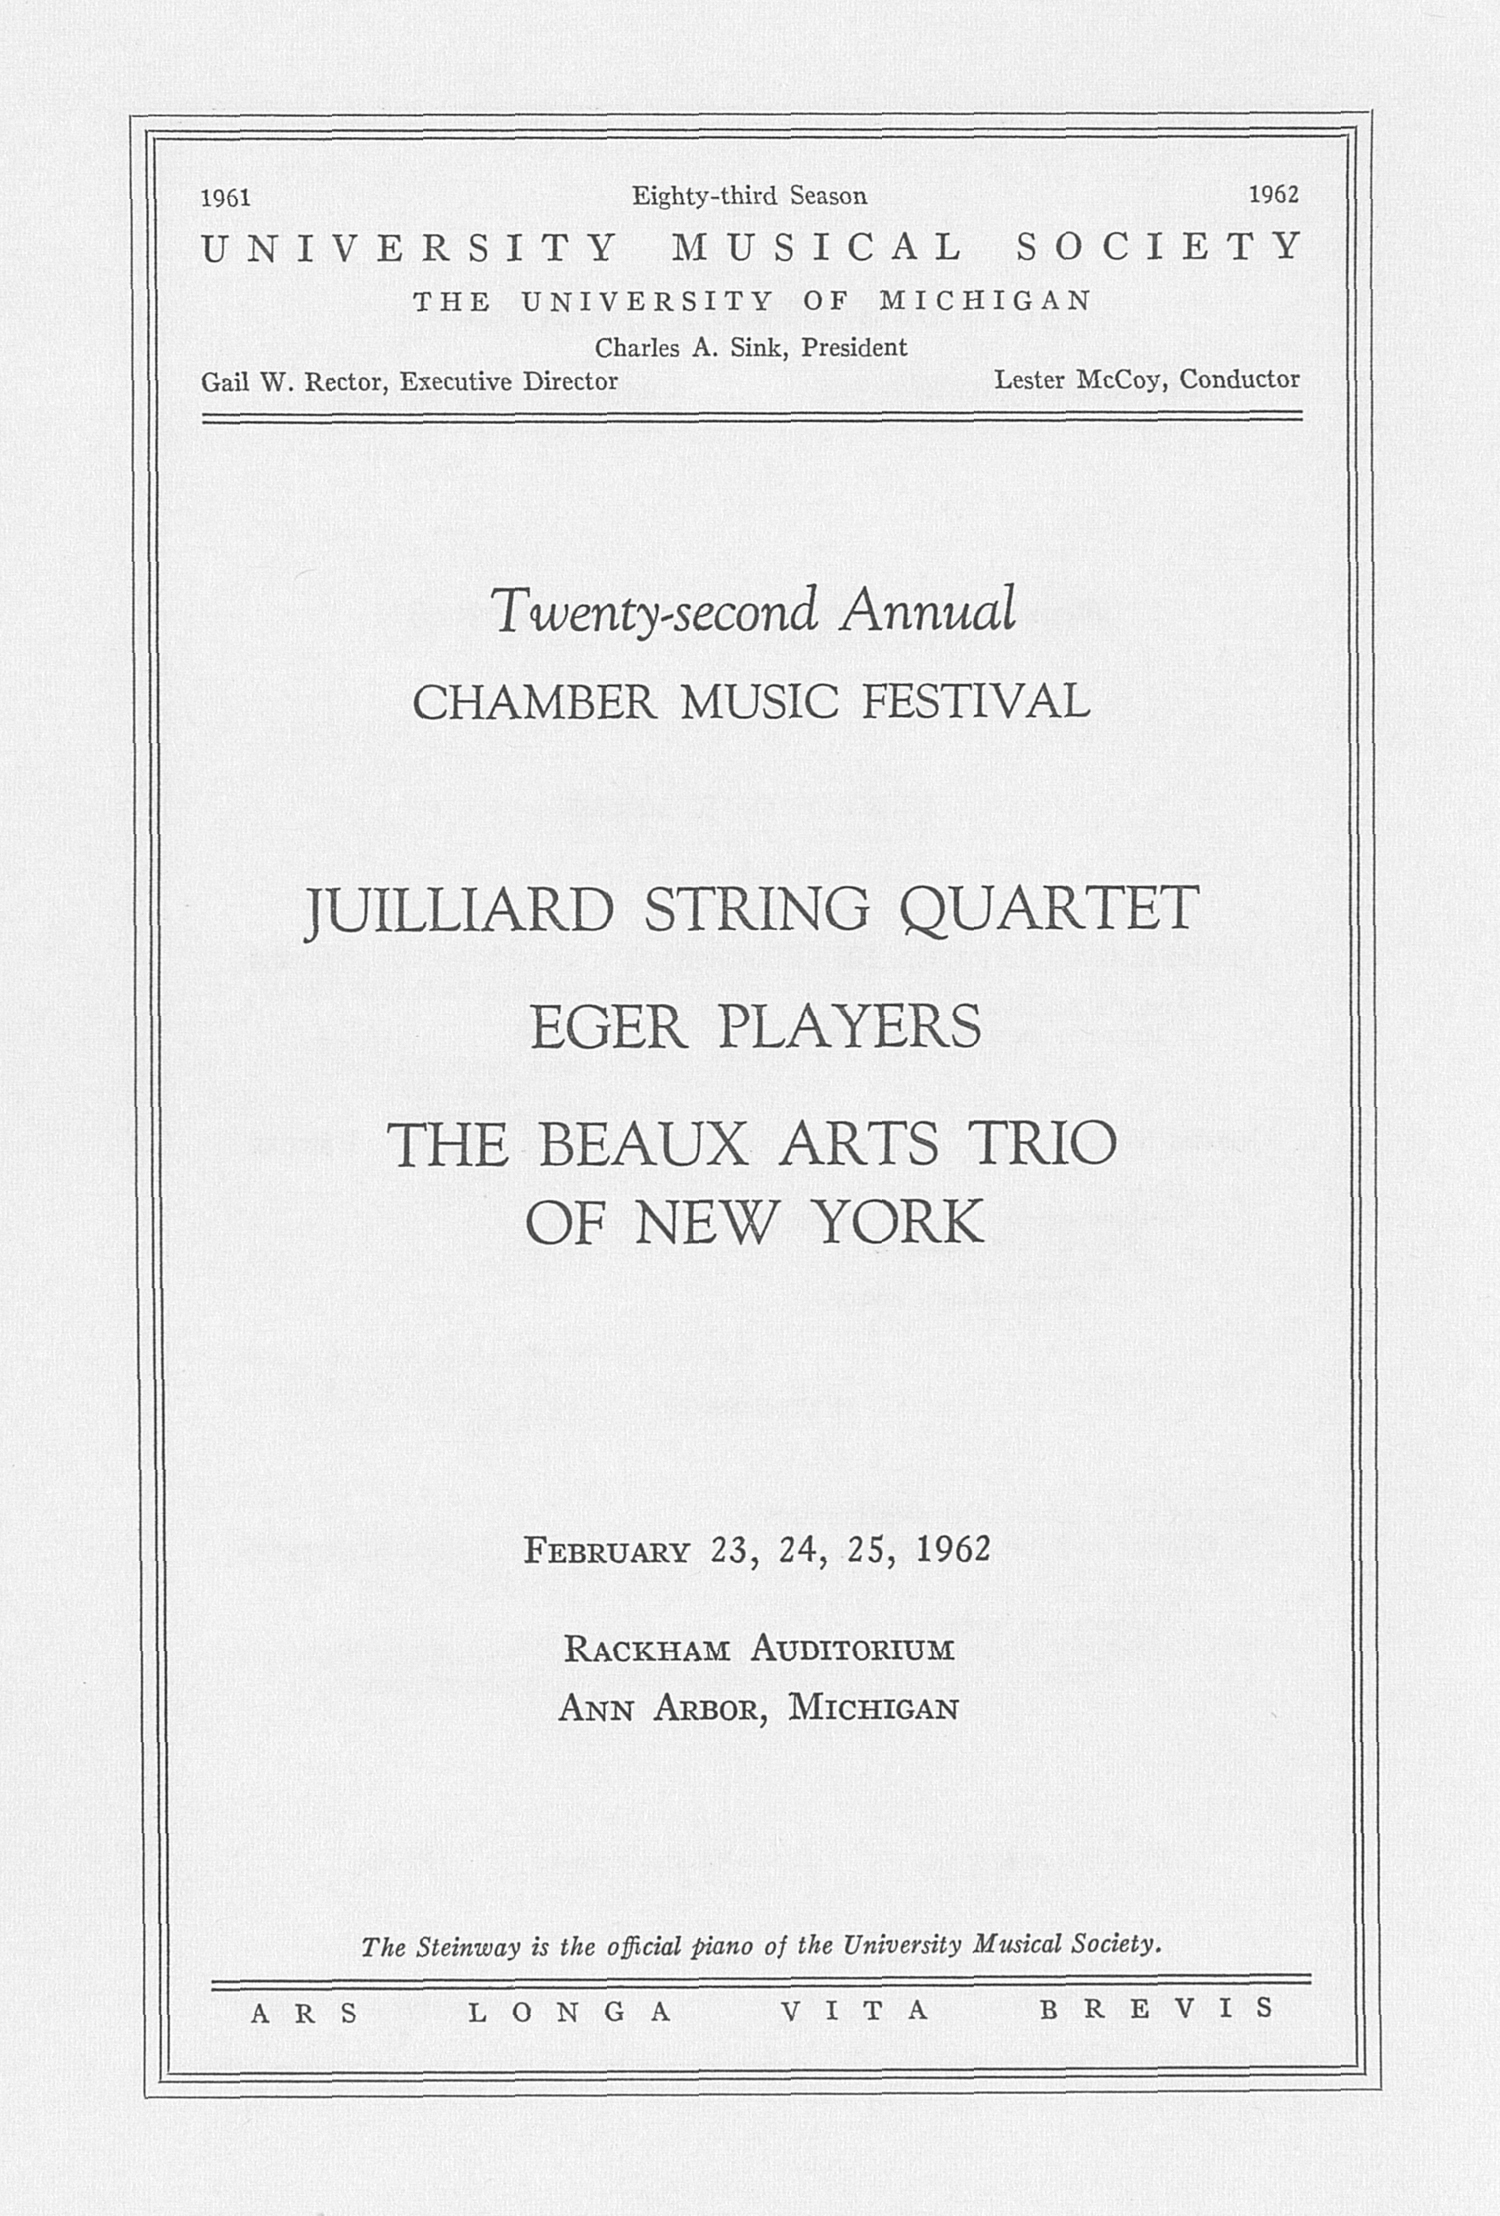 UMS Concert Program, February 23, 24, 25, 1962: Juilliard String Quartet --  image